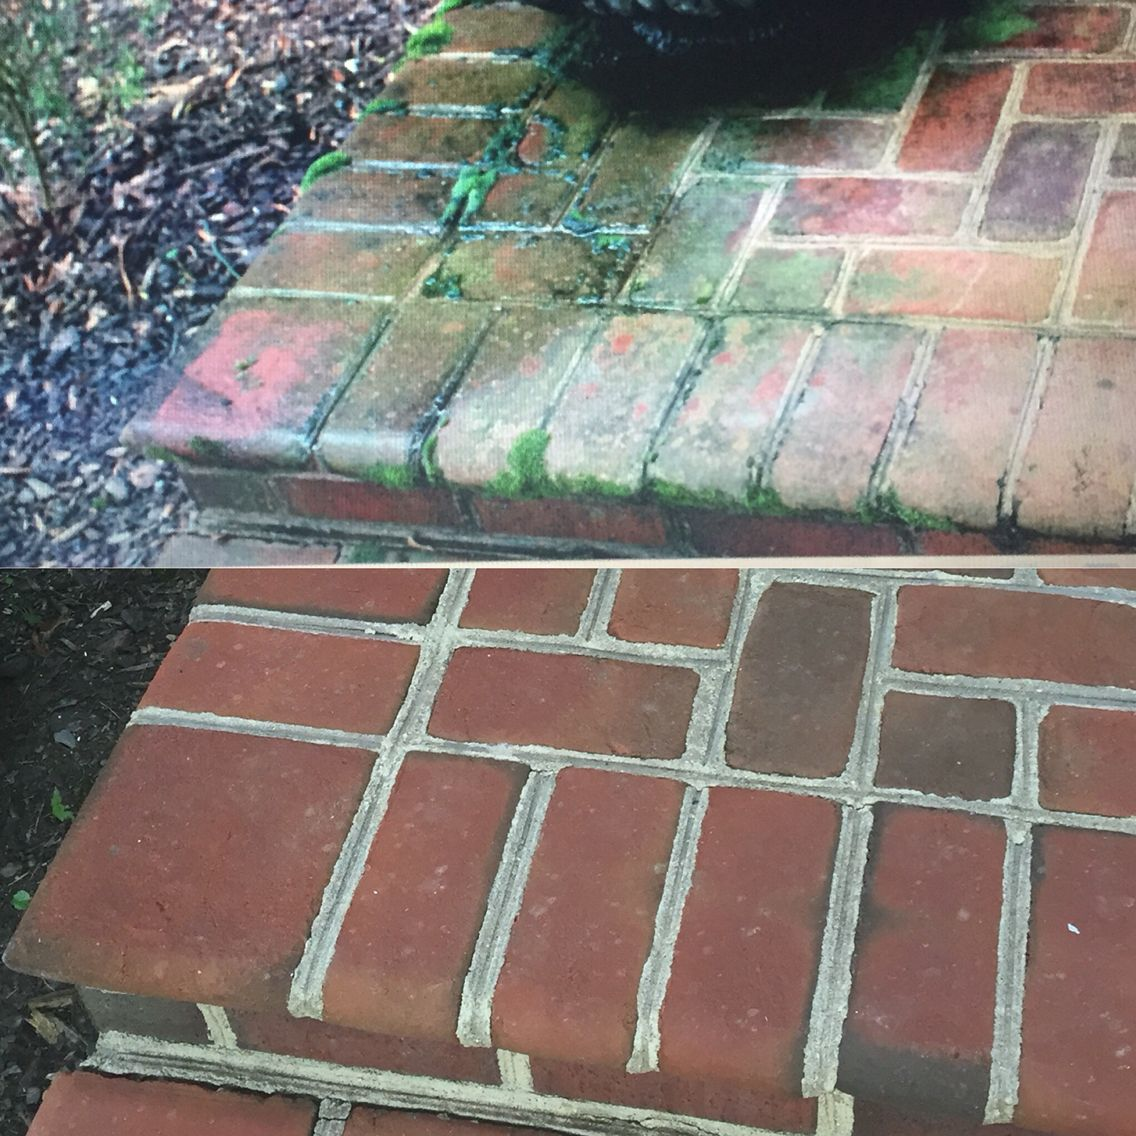 Powerwash Your Outdoor Brick Hardscapes To Make It Look Like New. It Removes  The Moss, Mold And Stains.